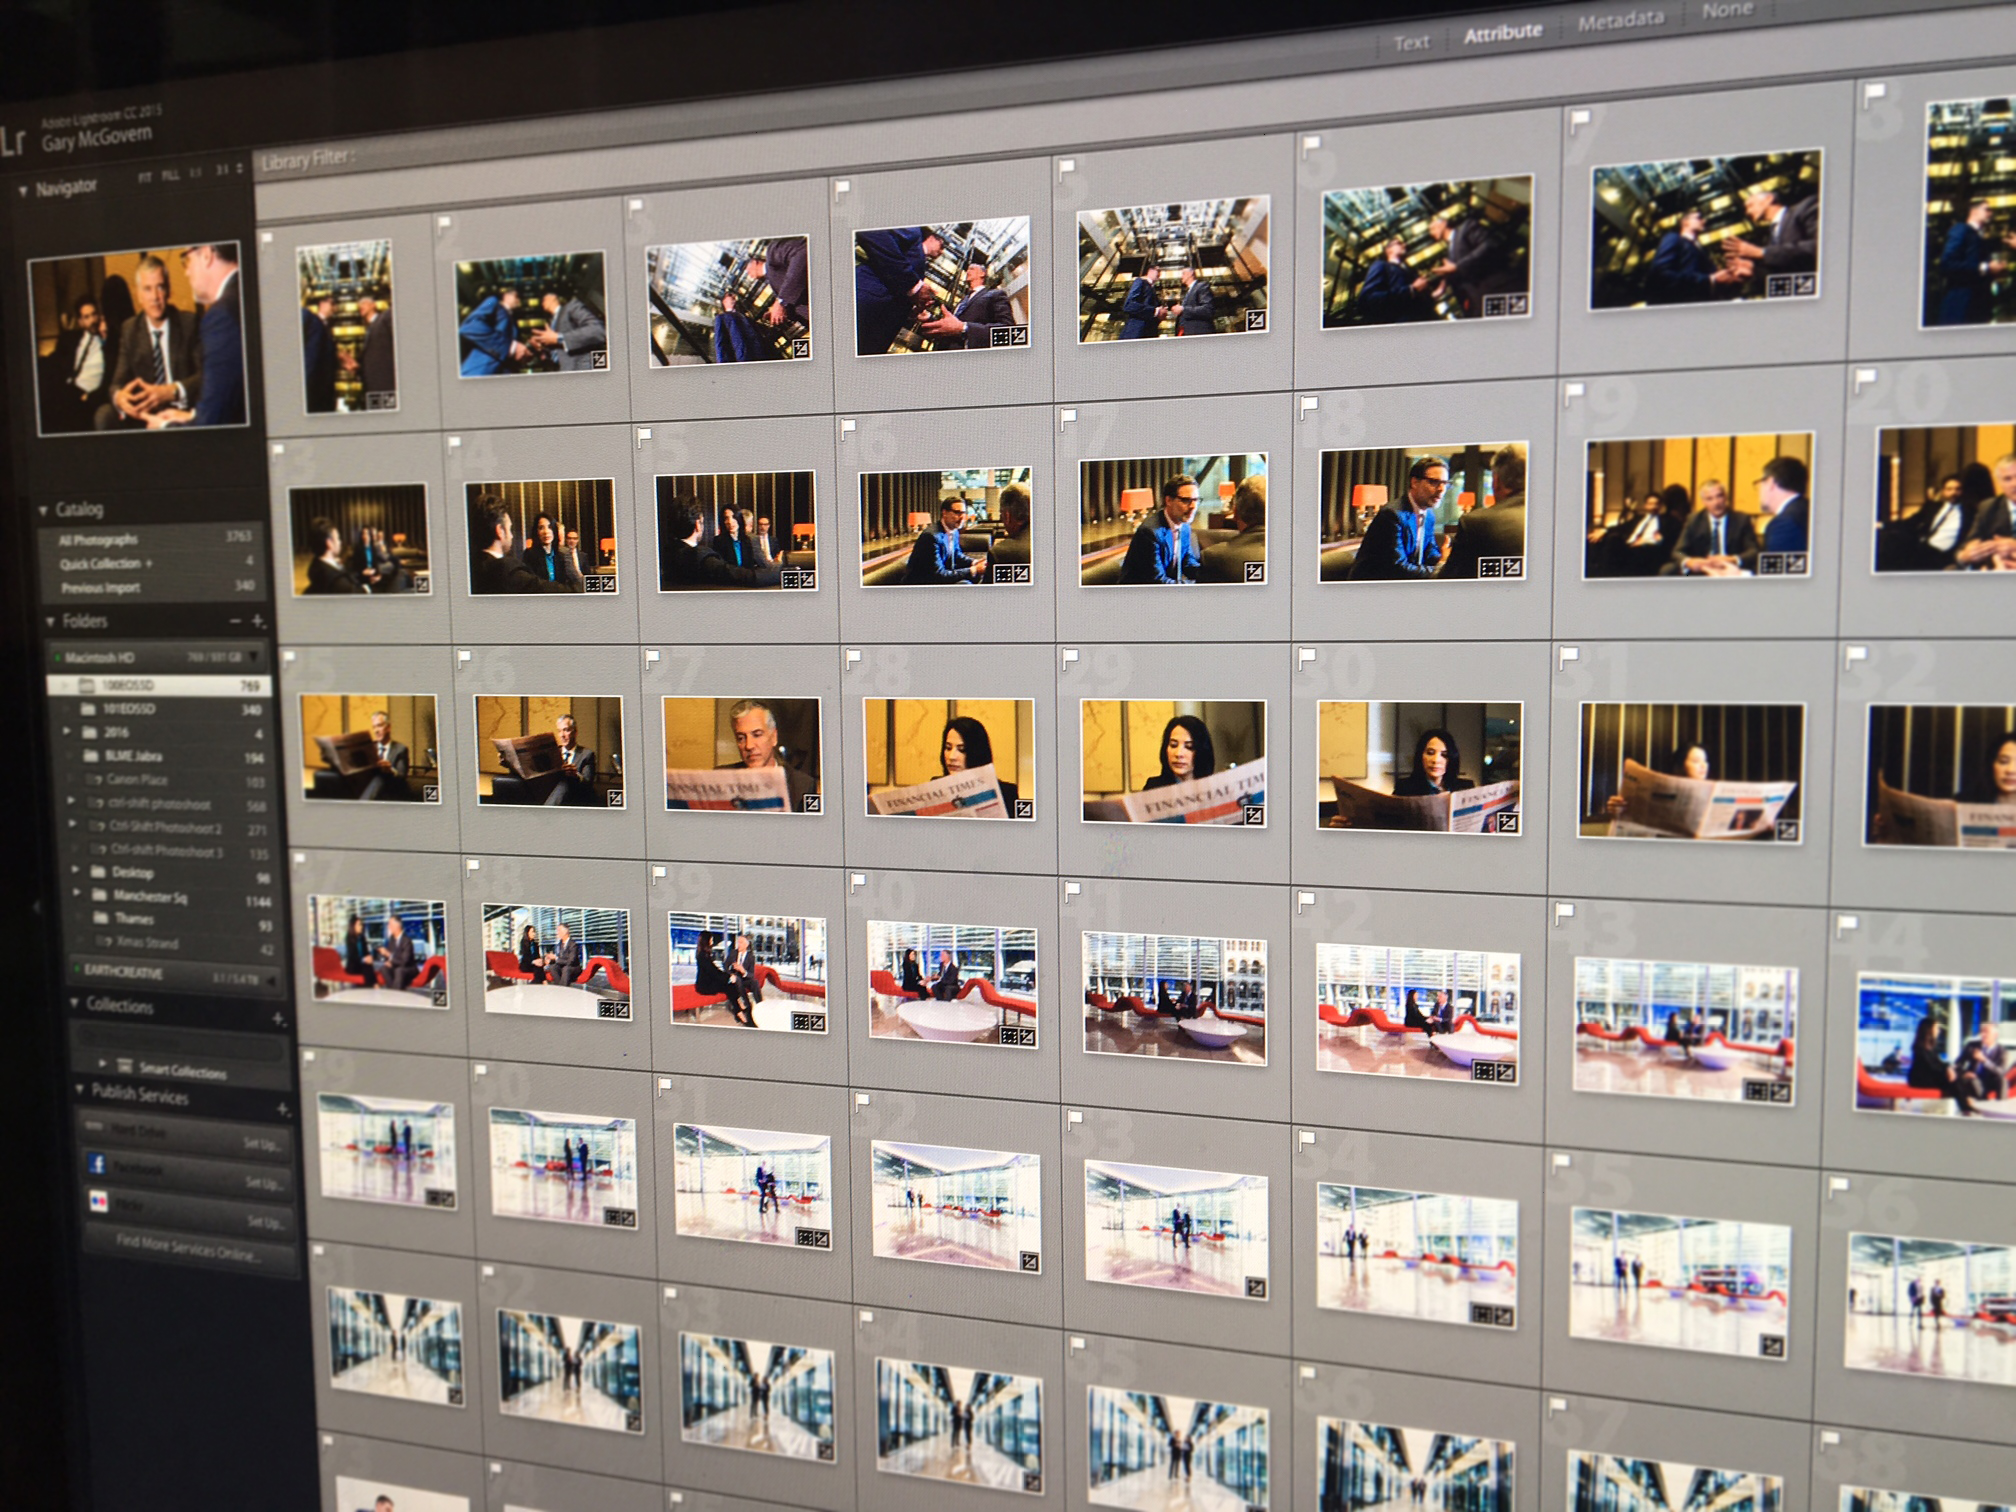 Editing and processing all the images from latest corporate photoshoot for Banking client based in the City of London.